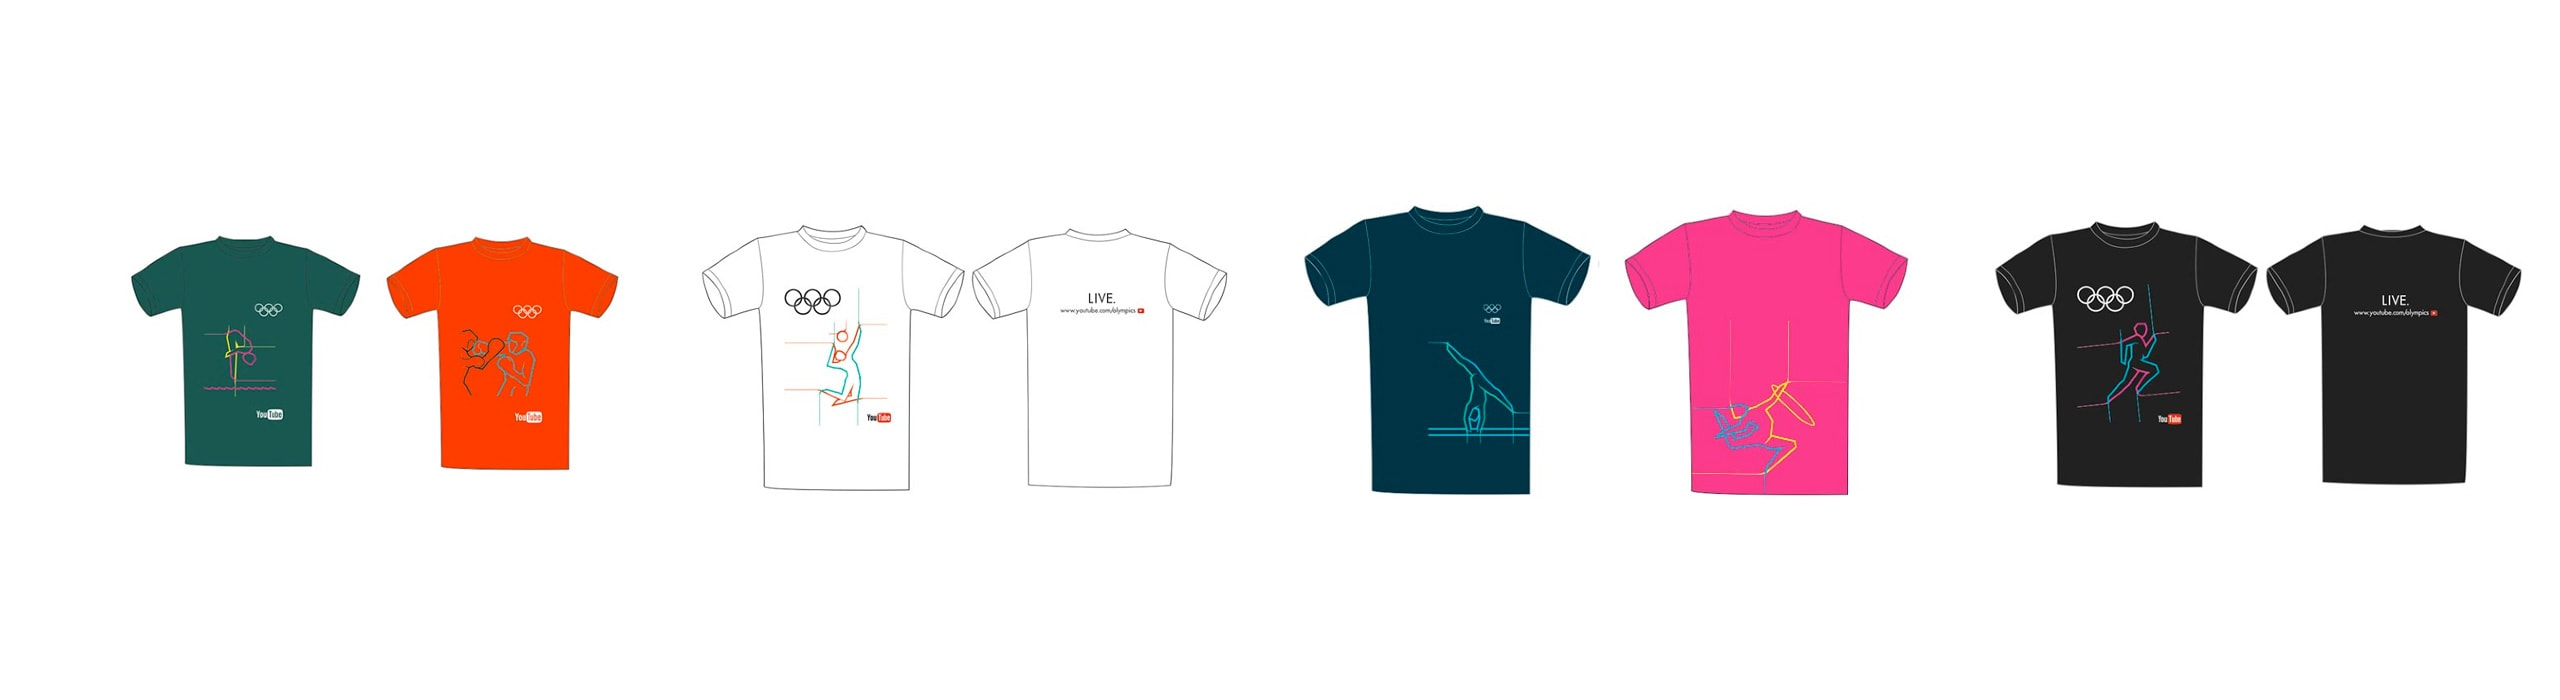 A Campaign for the Olympics - natie-olympics-campaign-tshirts - Natie Branding Agency